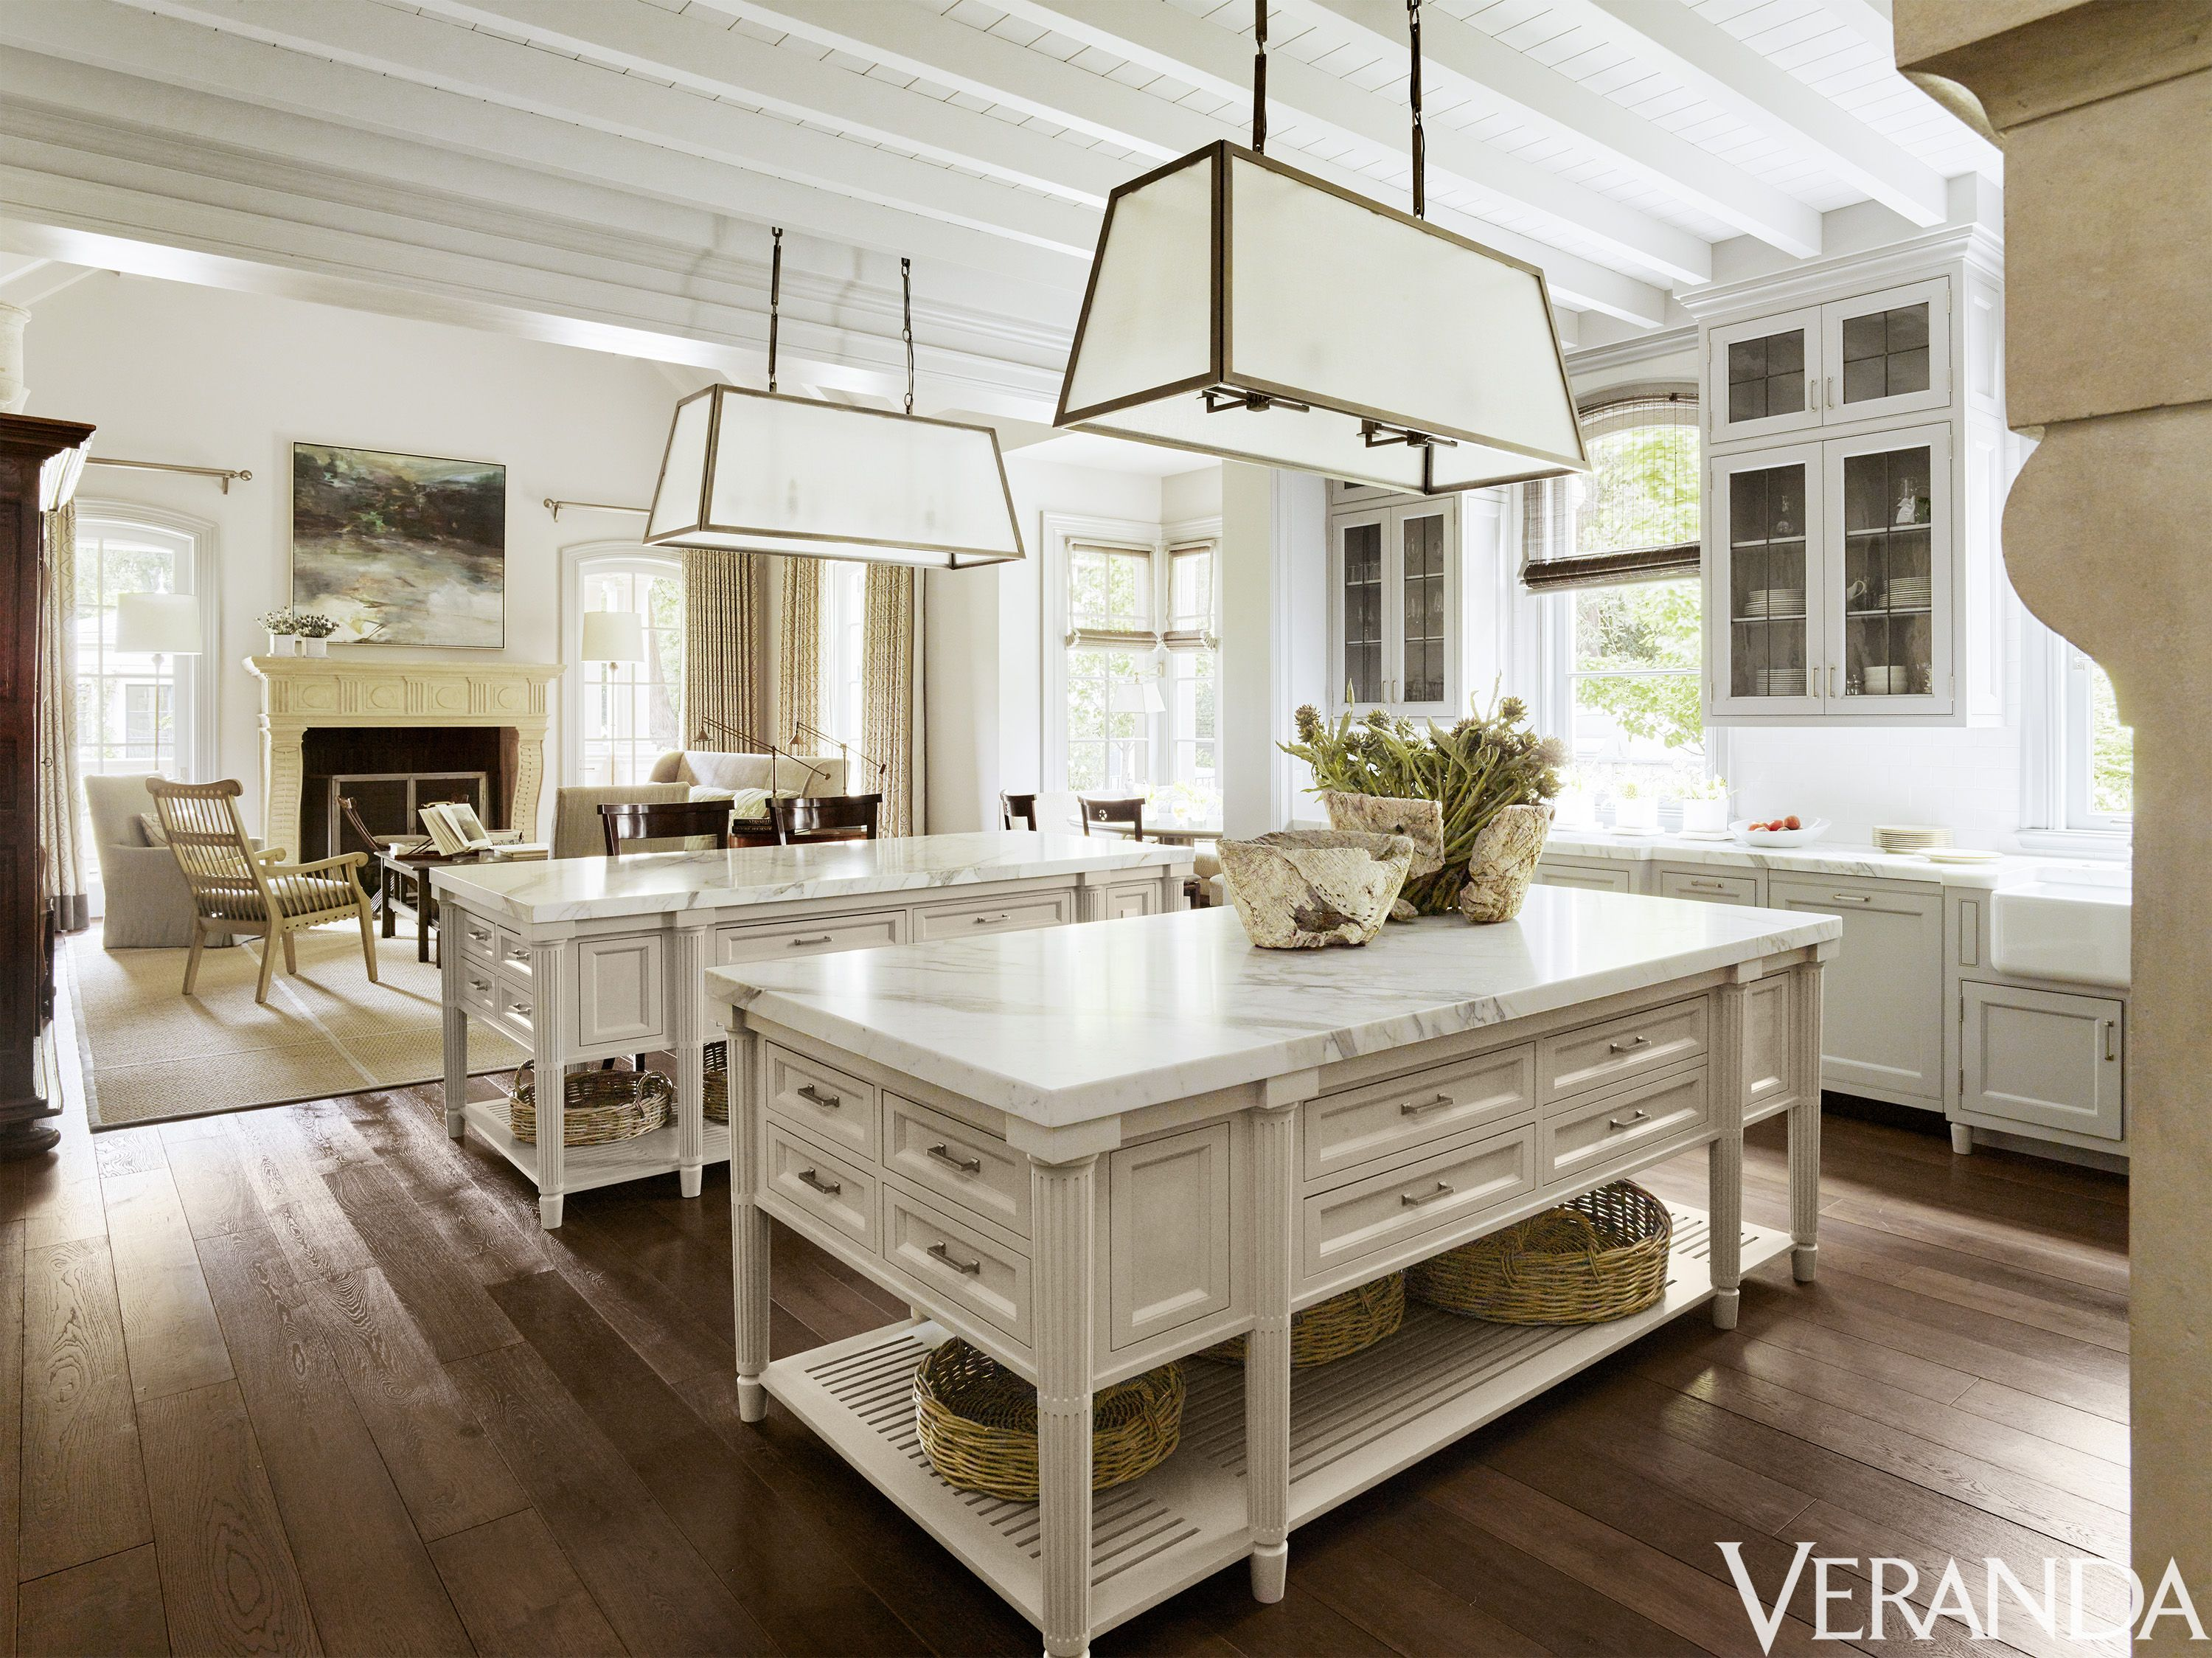 20 beautiful kitchen islands brimming with style best kitchen design ideas for small to large kitchens  rh   veranda com